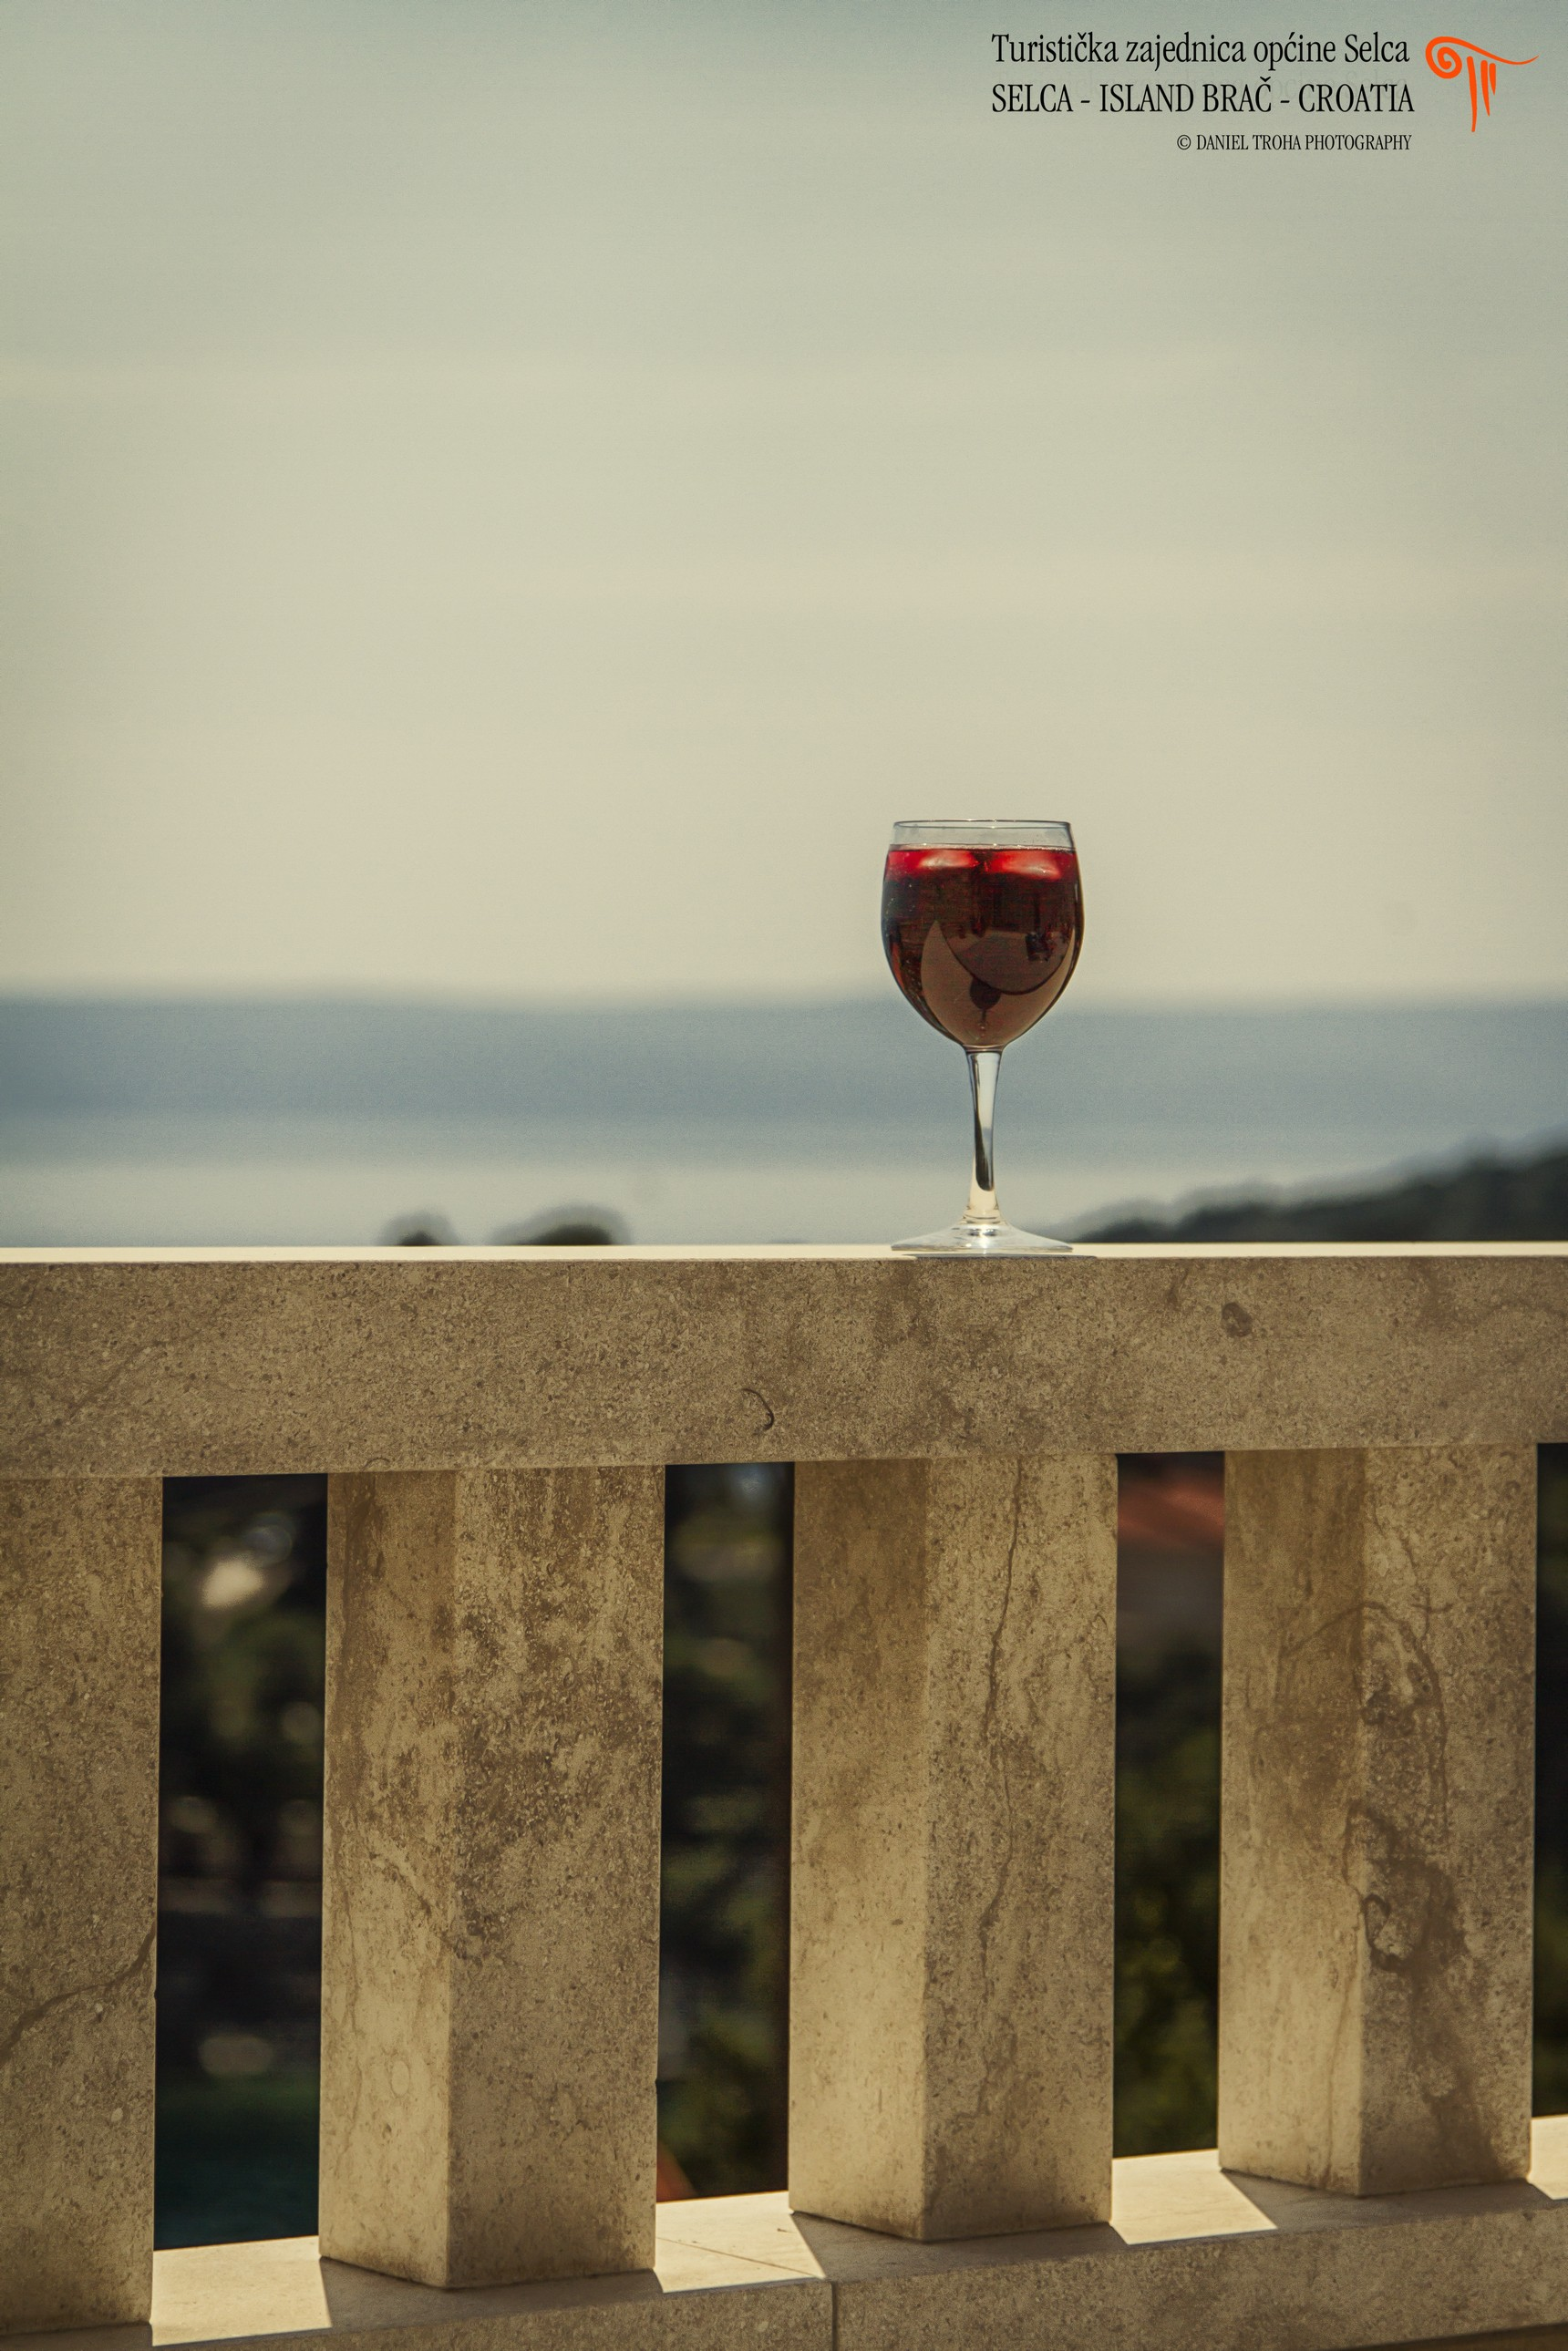 Glass of wine at the viewpoint of Selca